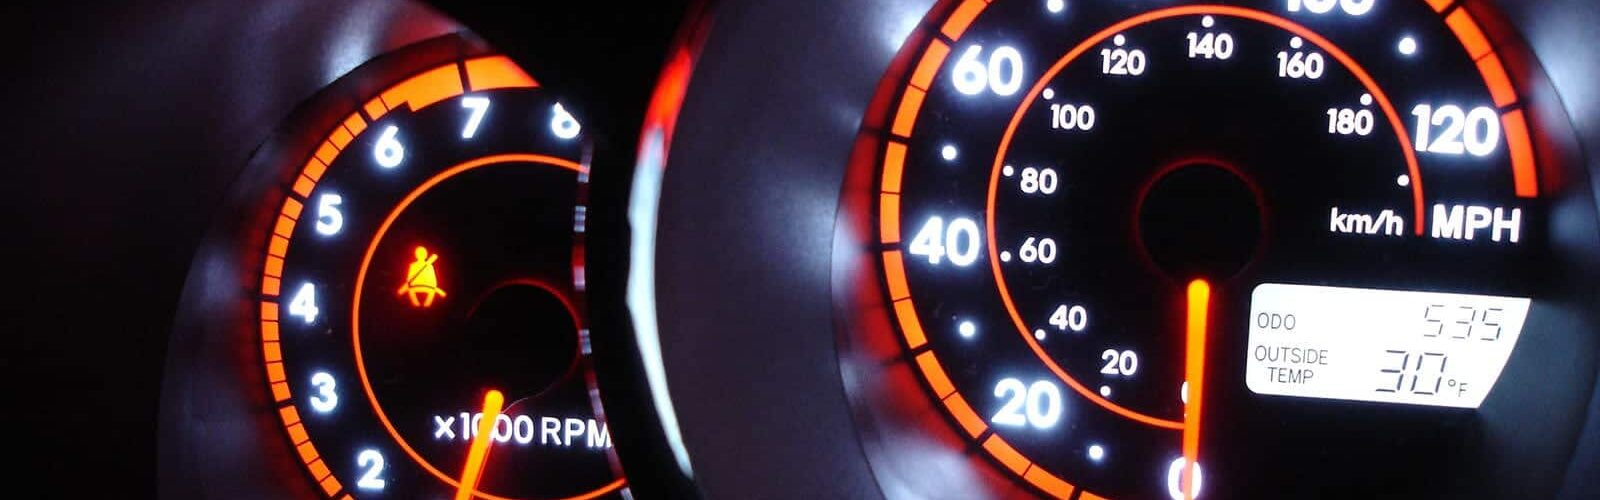 Photo of vehicle dashboard lit up at night